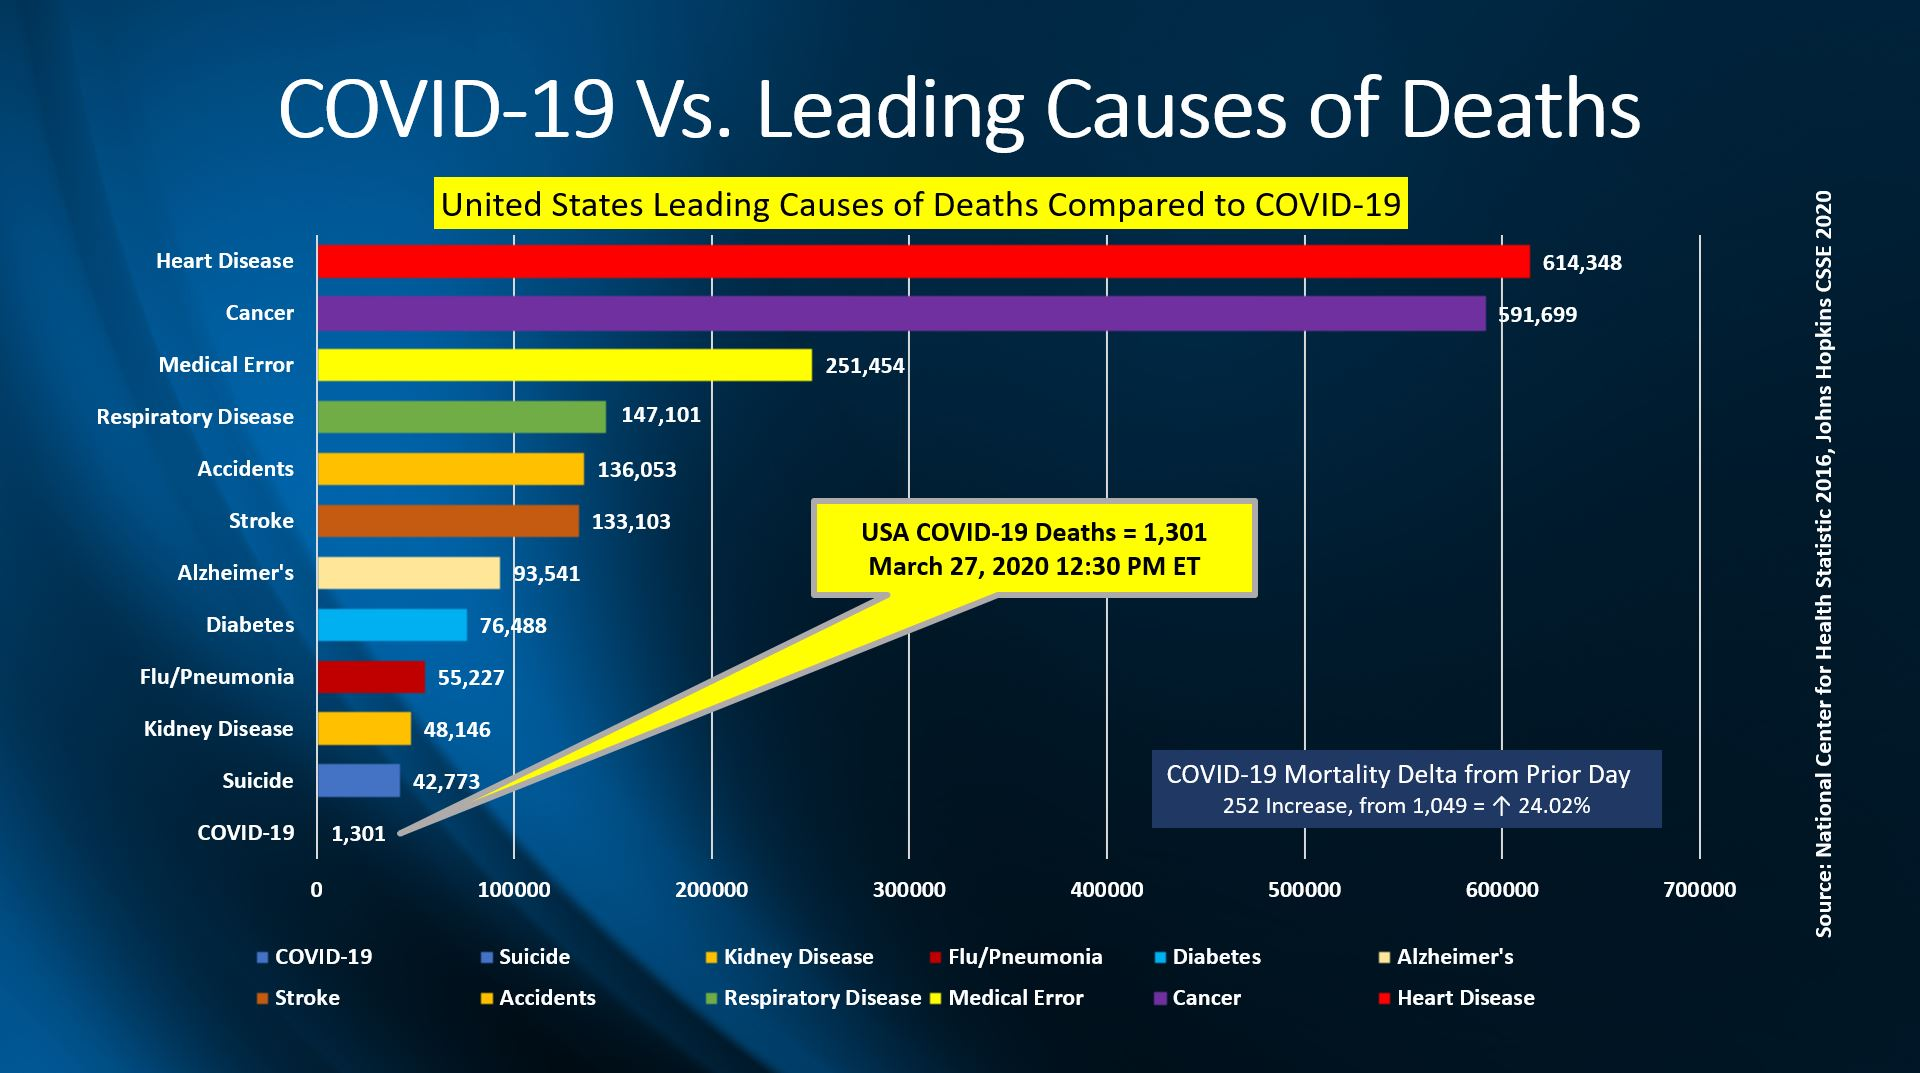 COVID-19 Deaths Vs. Leading Causes of Death March 27, 2020